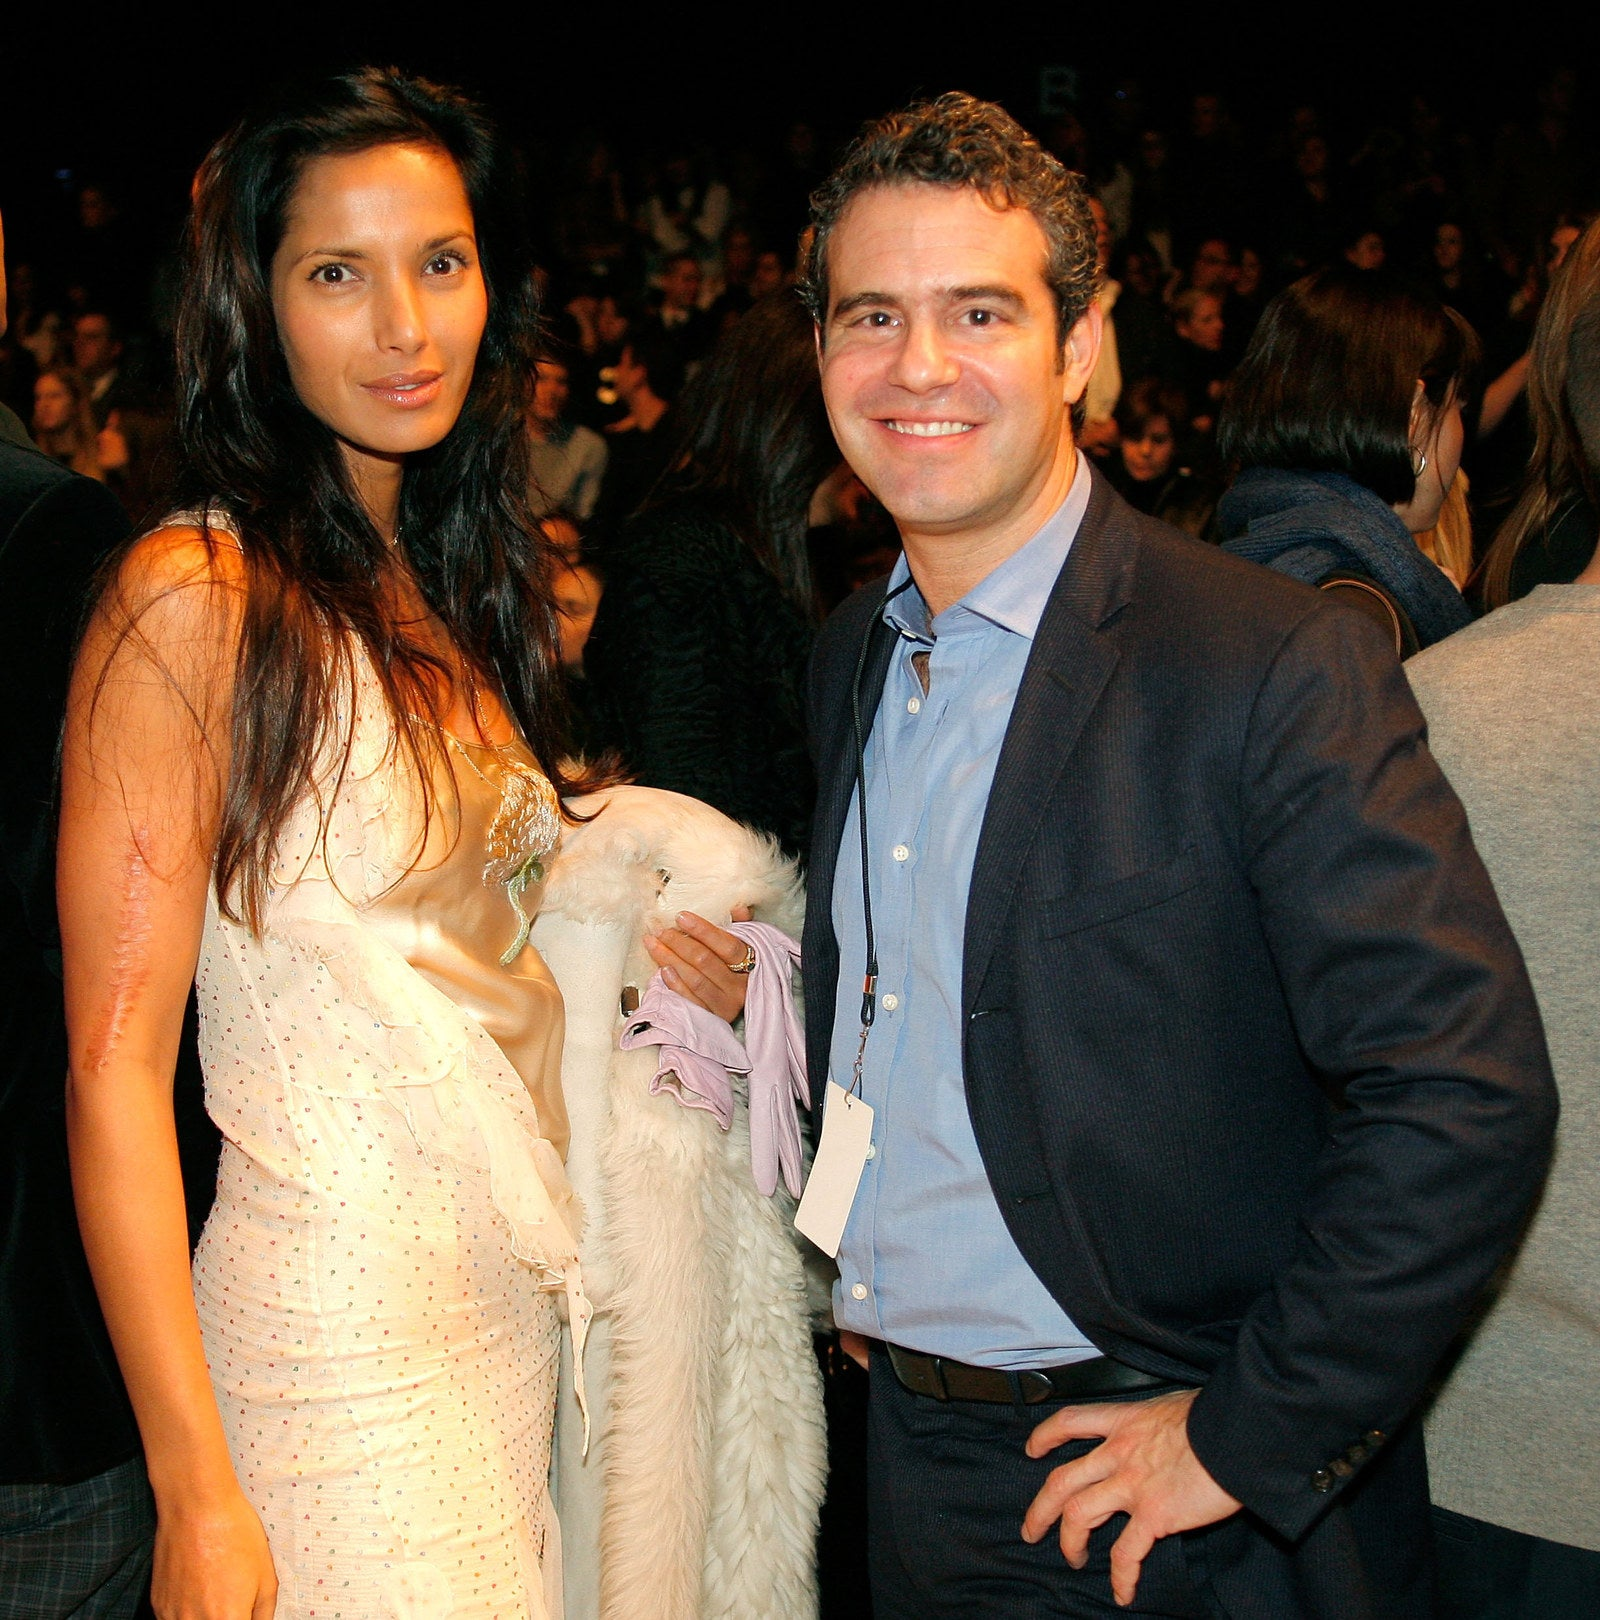 2008: Padma Lakshmi and Andy Cohen.